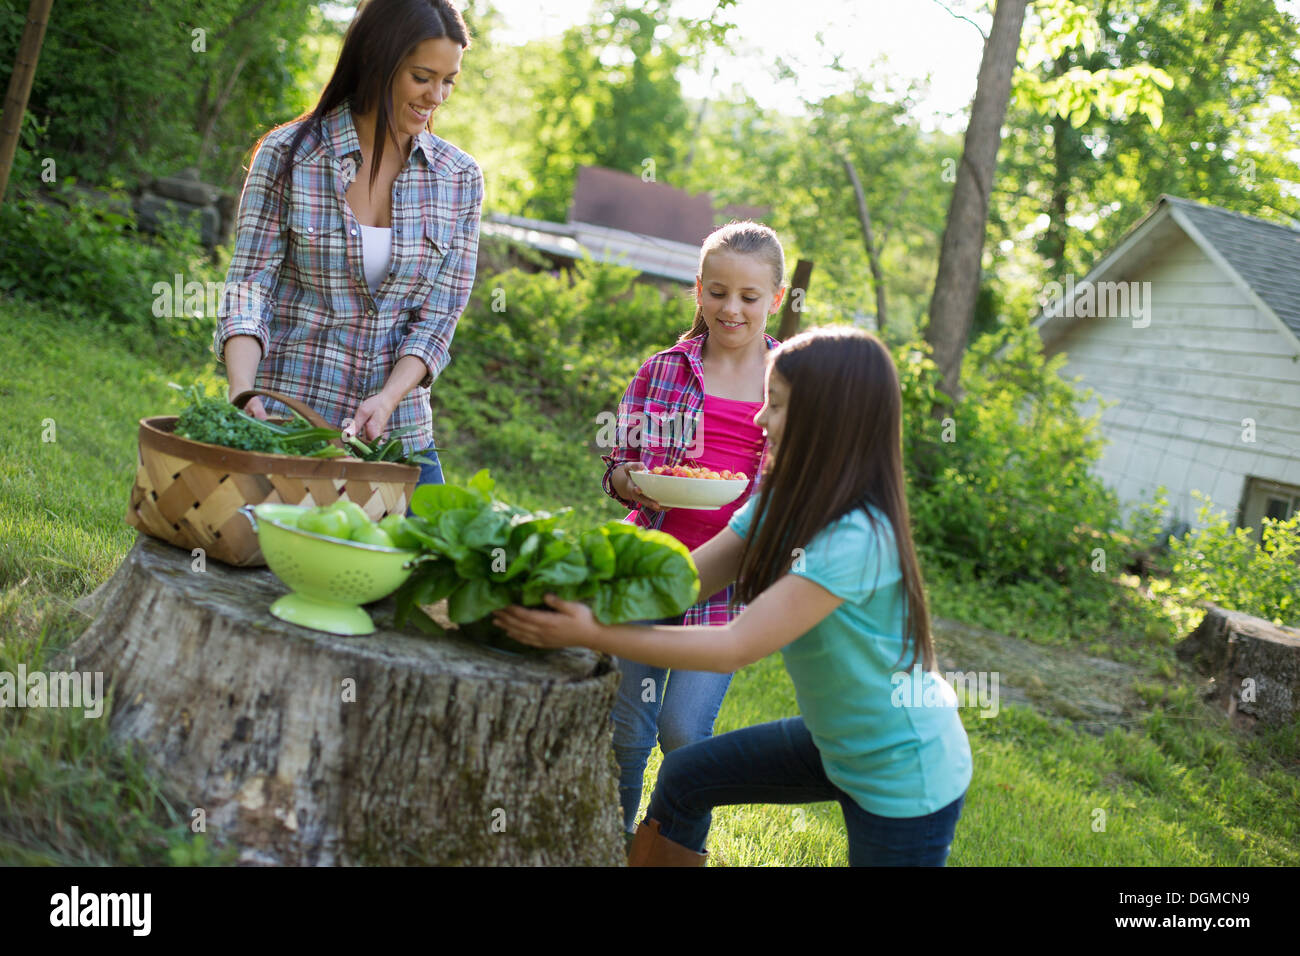 Organic farm. Summer party. Two girls and a young woman preparing salads and vegetables for a meal. - Stock Image